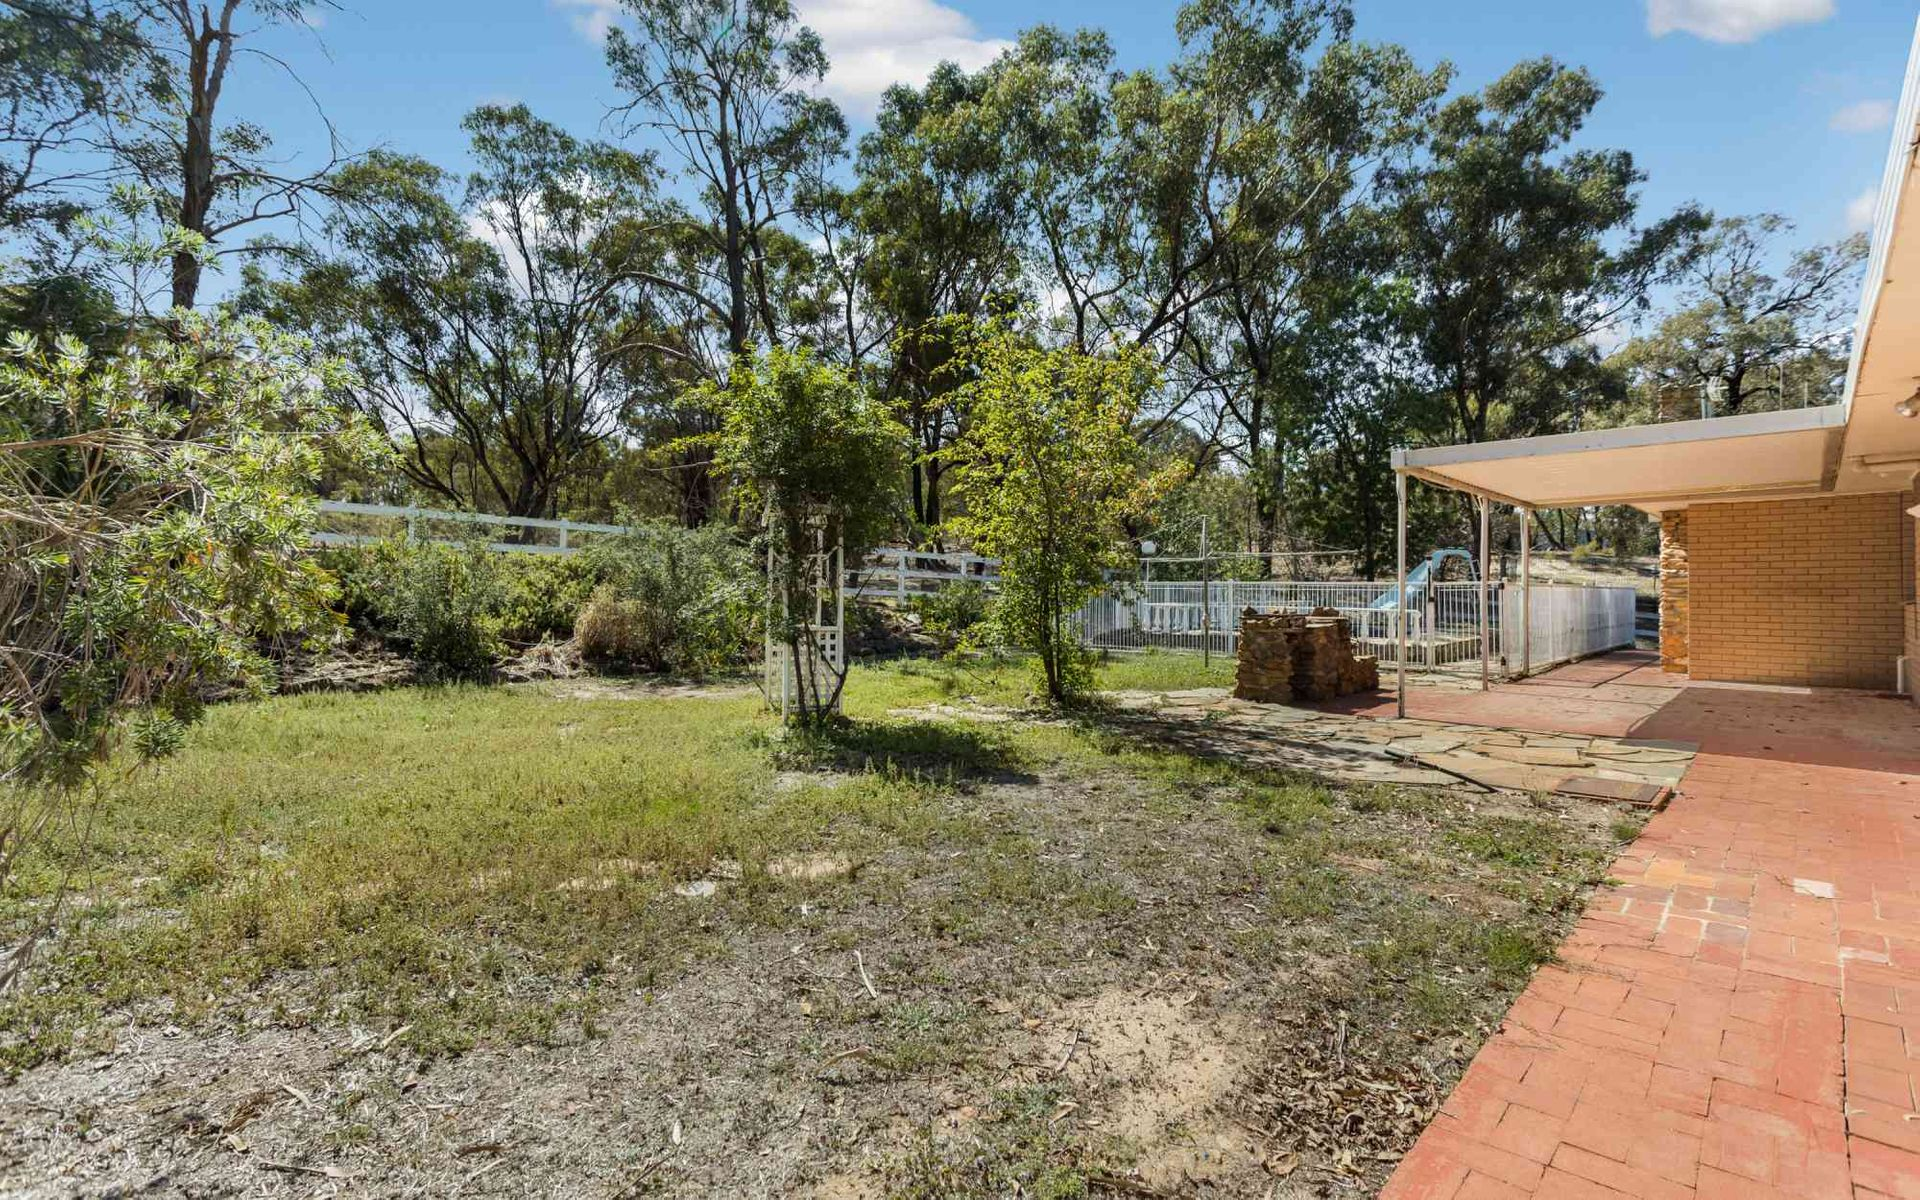 230-236 Marong Road, Maiden Gully, VIC 3551